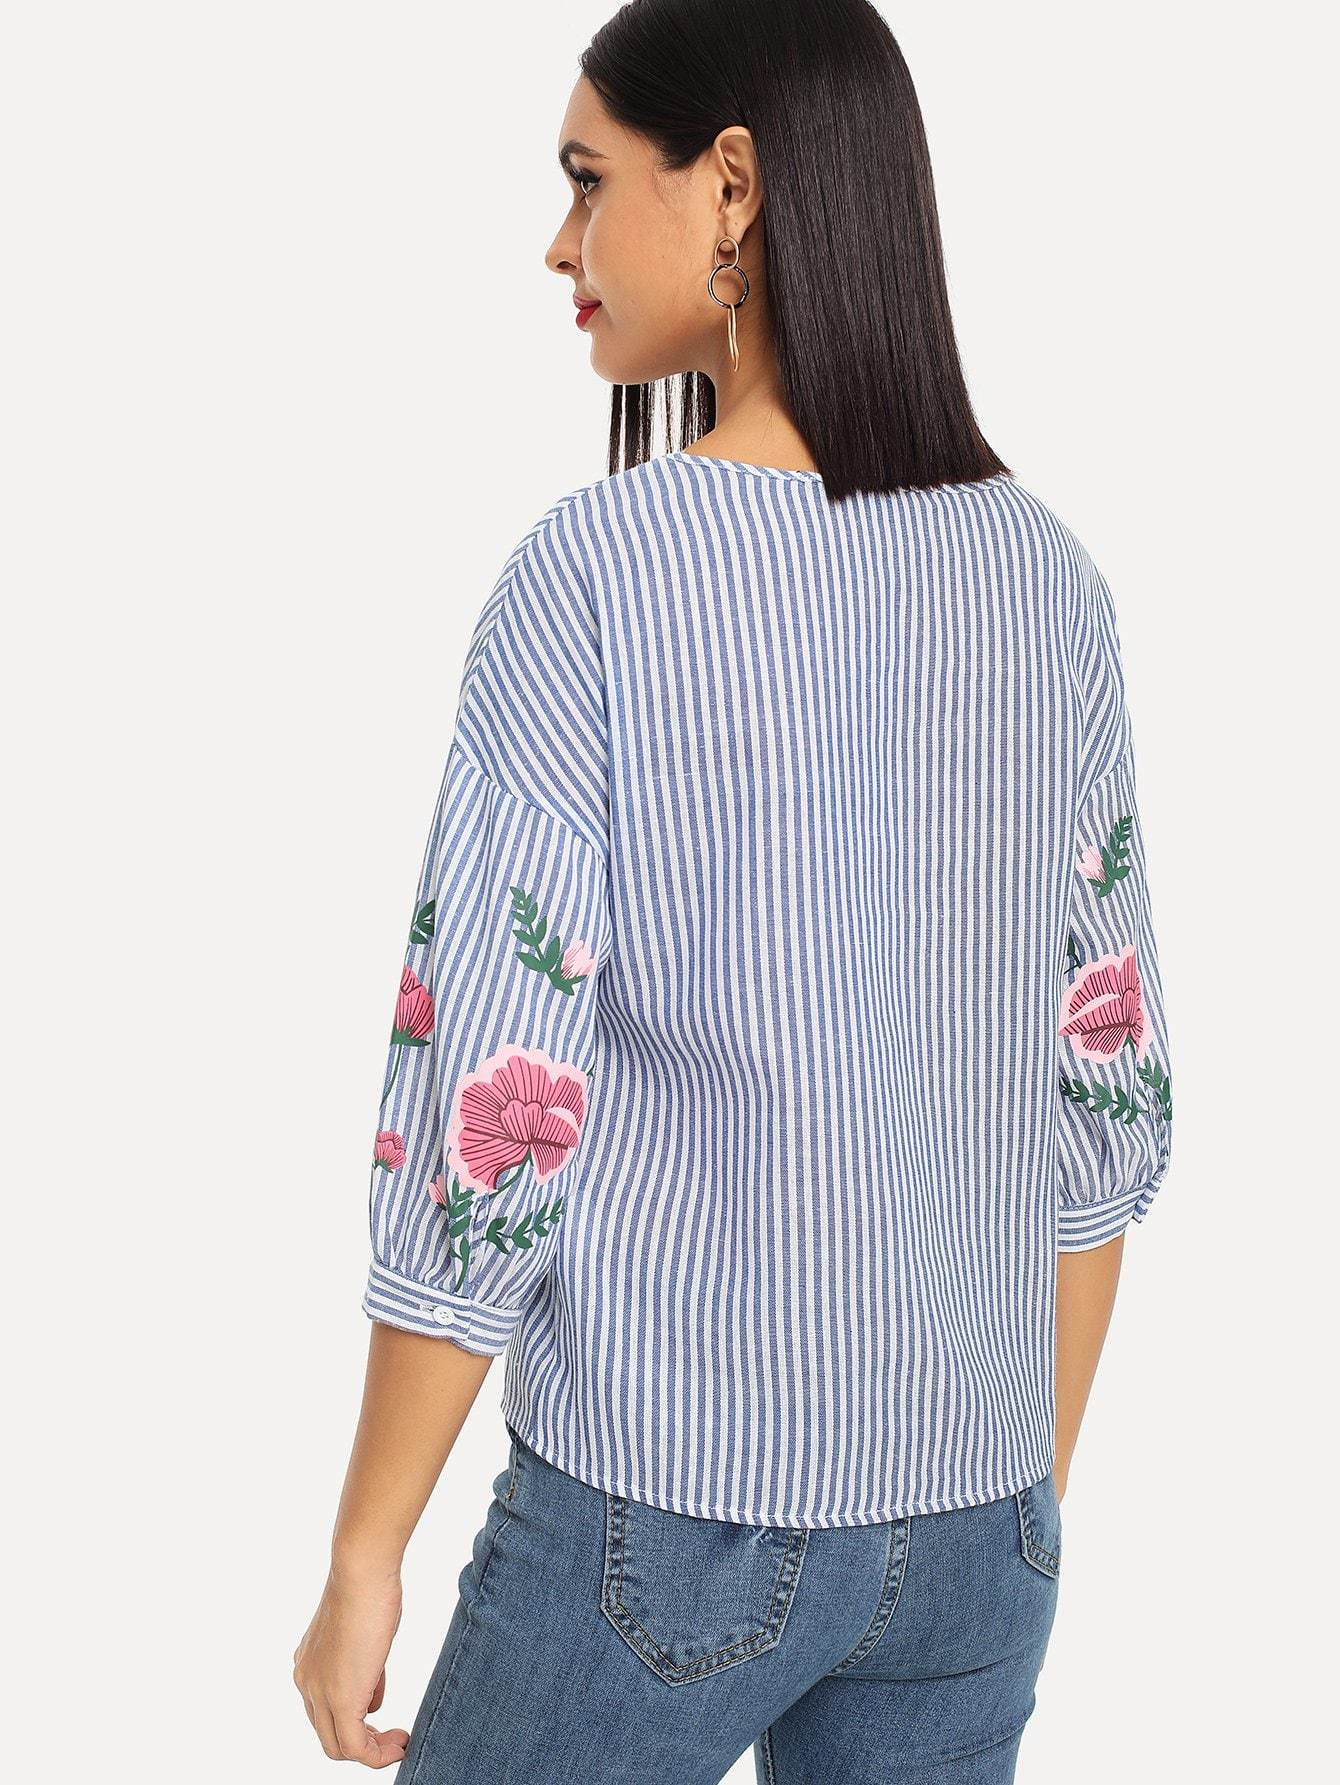 Blue Flower Striped Blouse - LoveSylvester